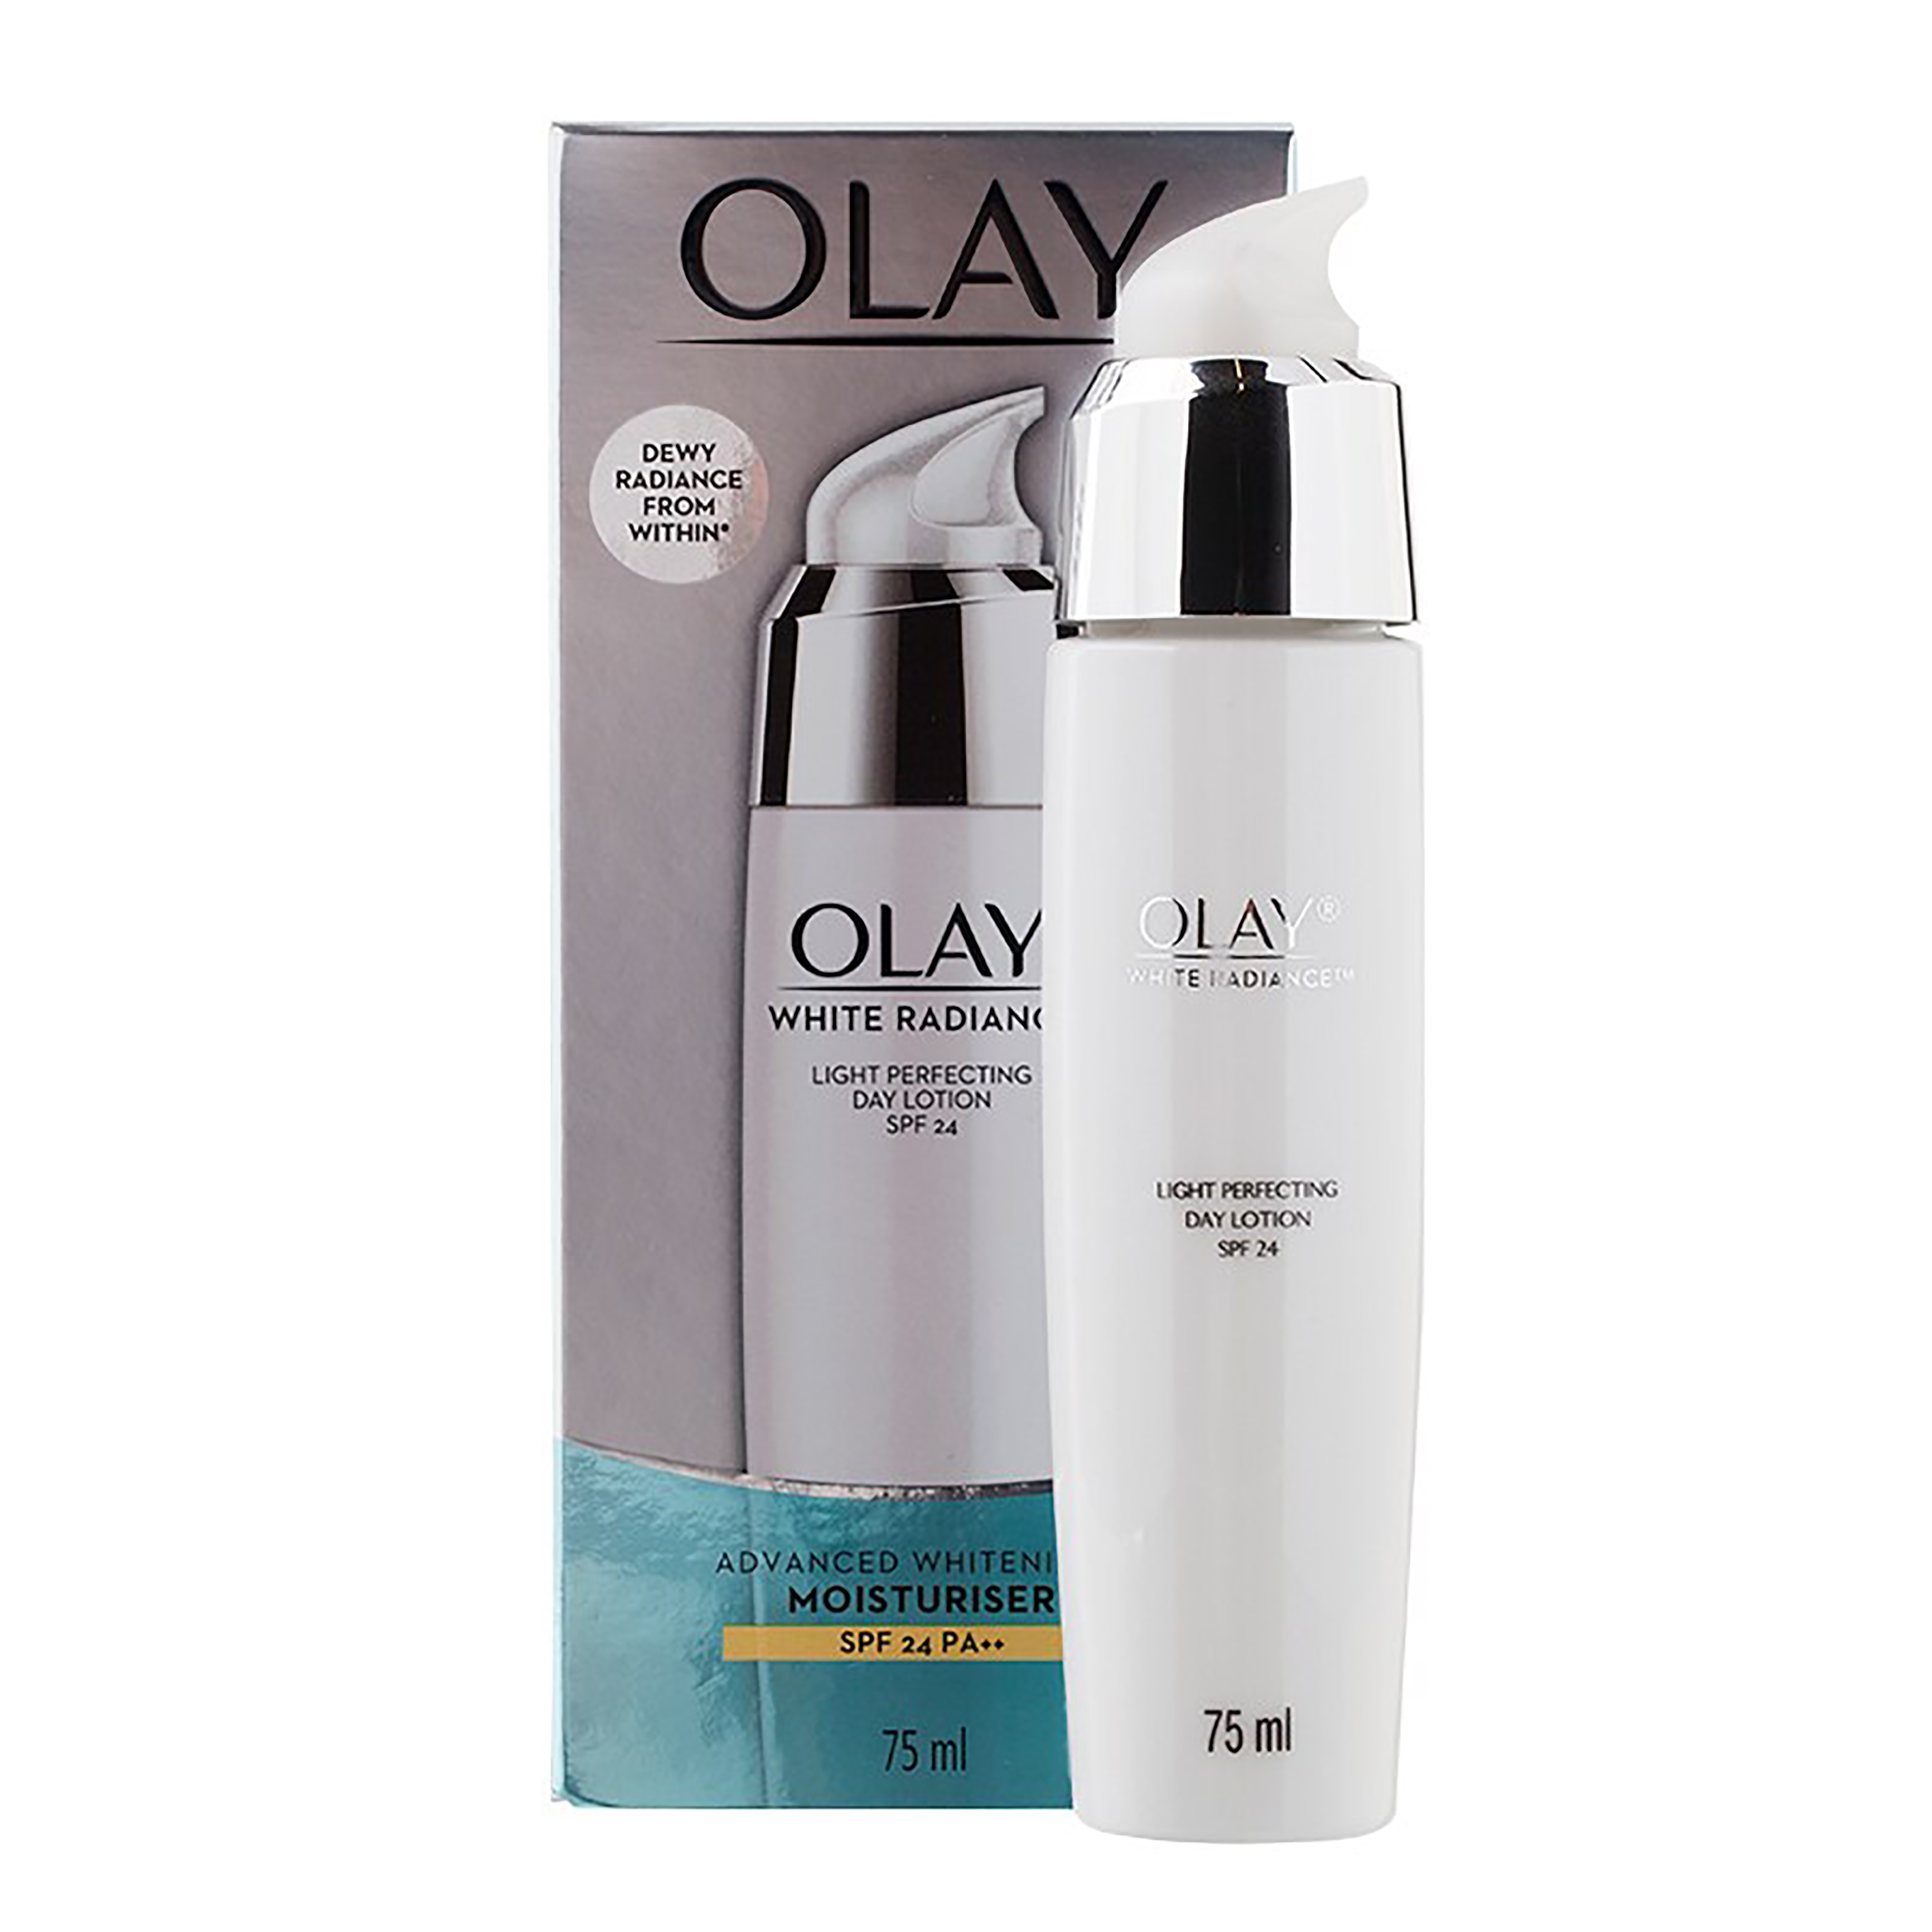 Olay White Radiance Cellucent Lotion SPF-24 Pa+++  75ml